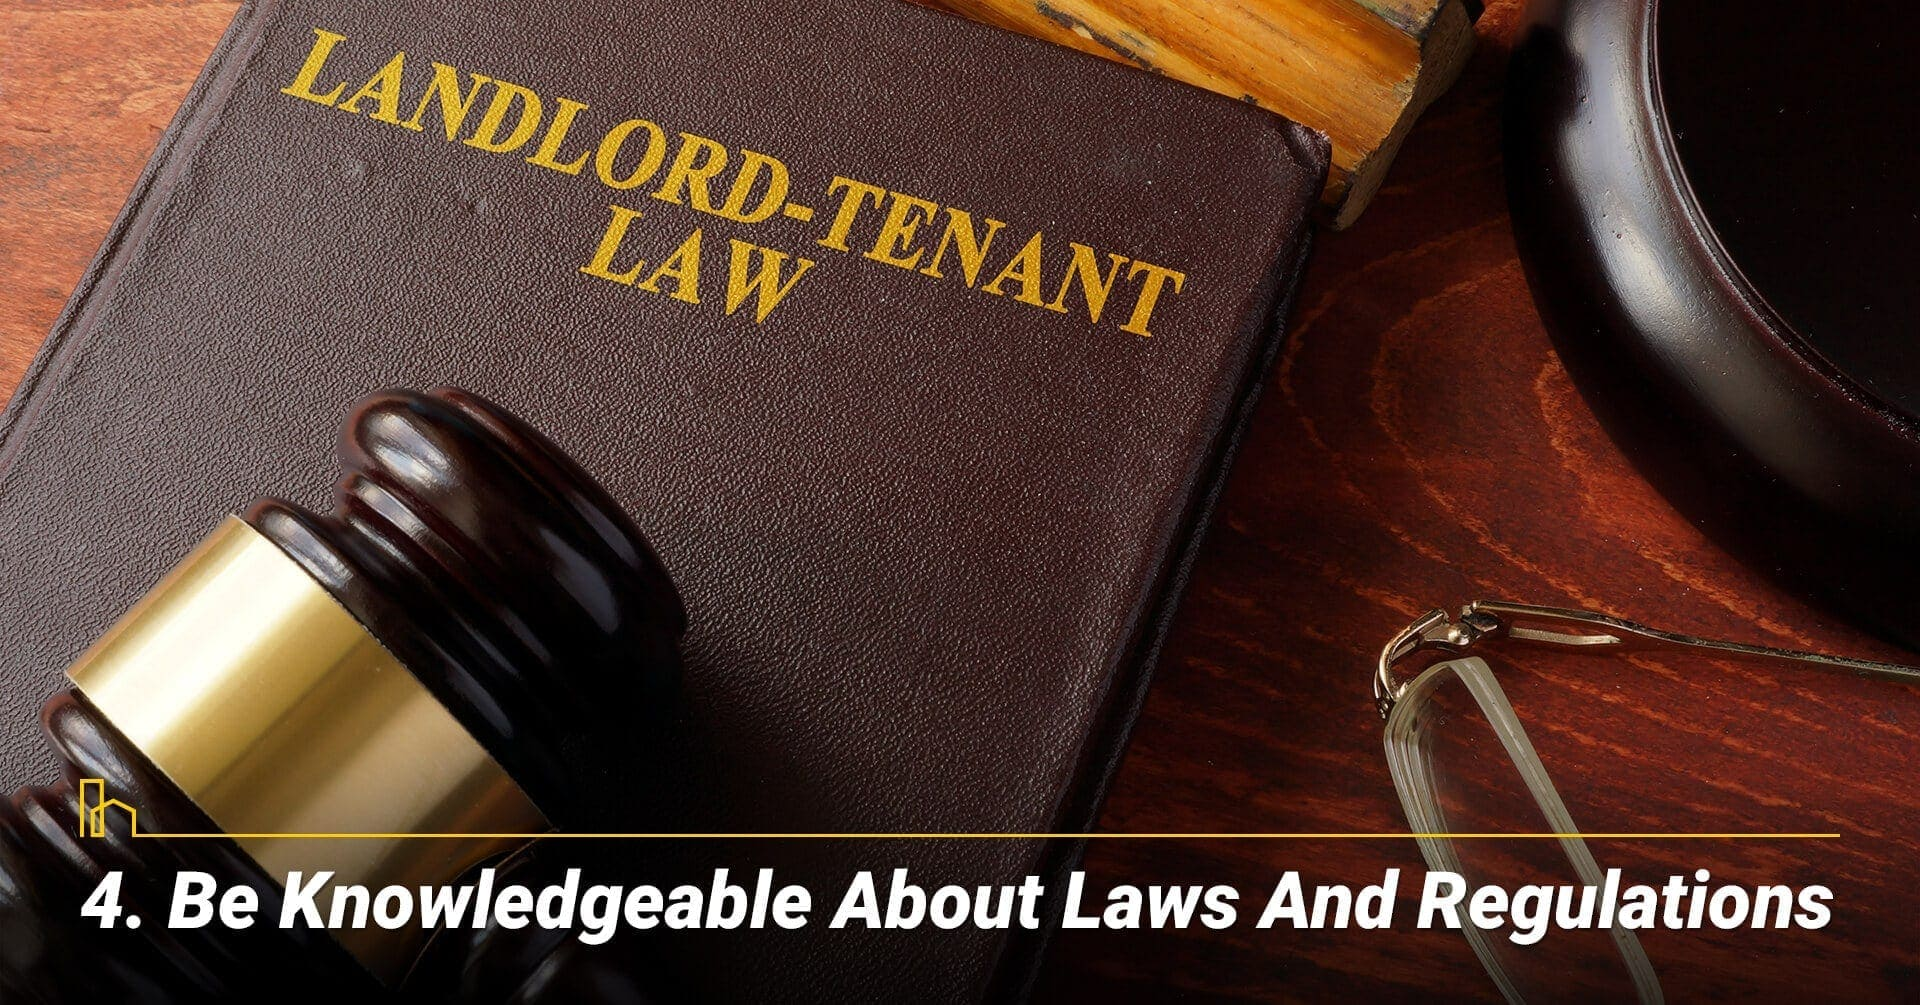 Be Knowledgeable About Laws And Regulations, know your rights and the laws